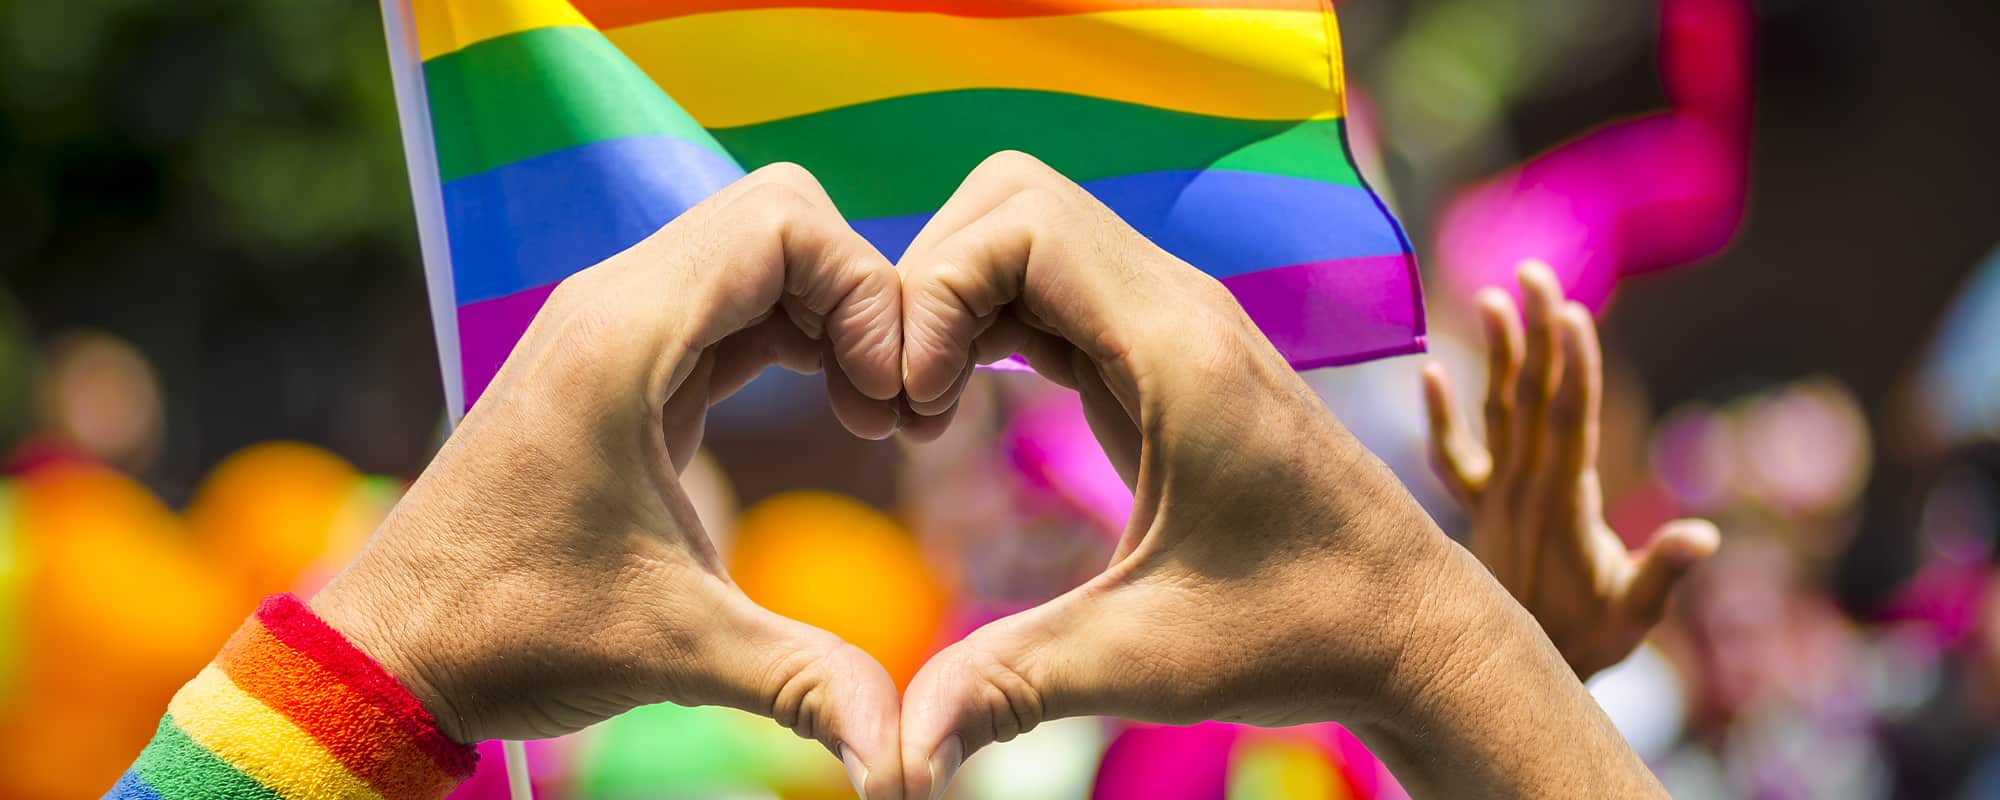 How To Be An Ally And Show Your Support This Pride Month